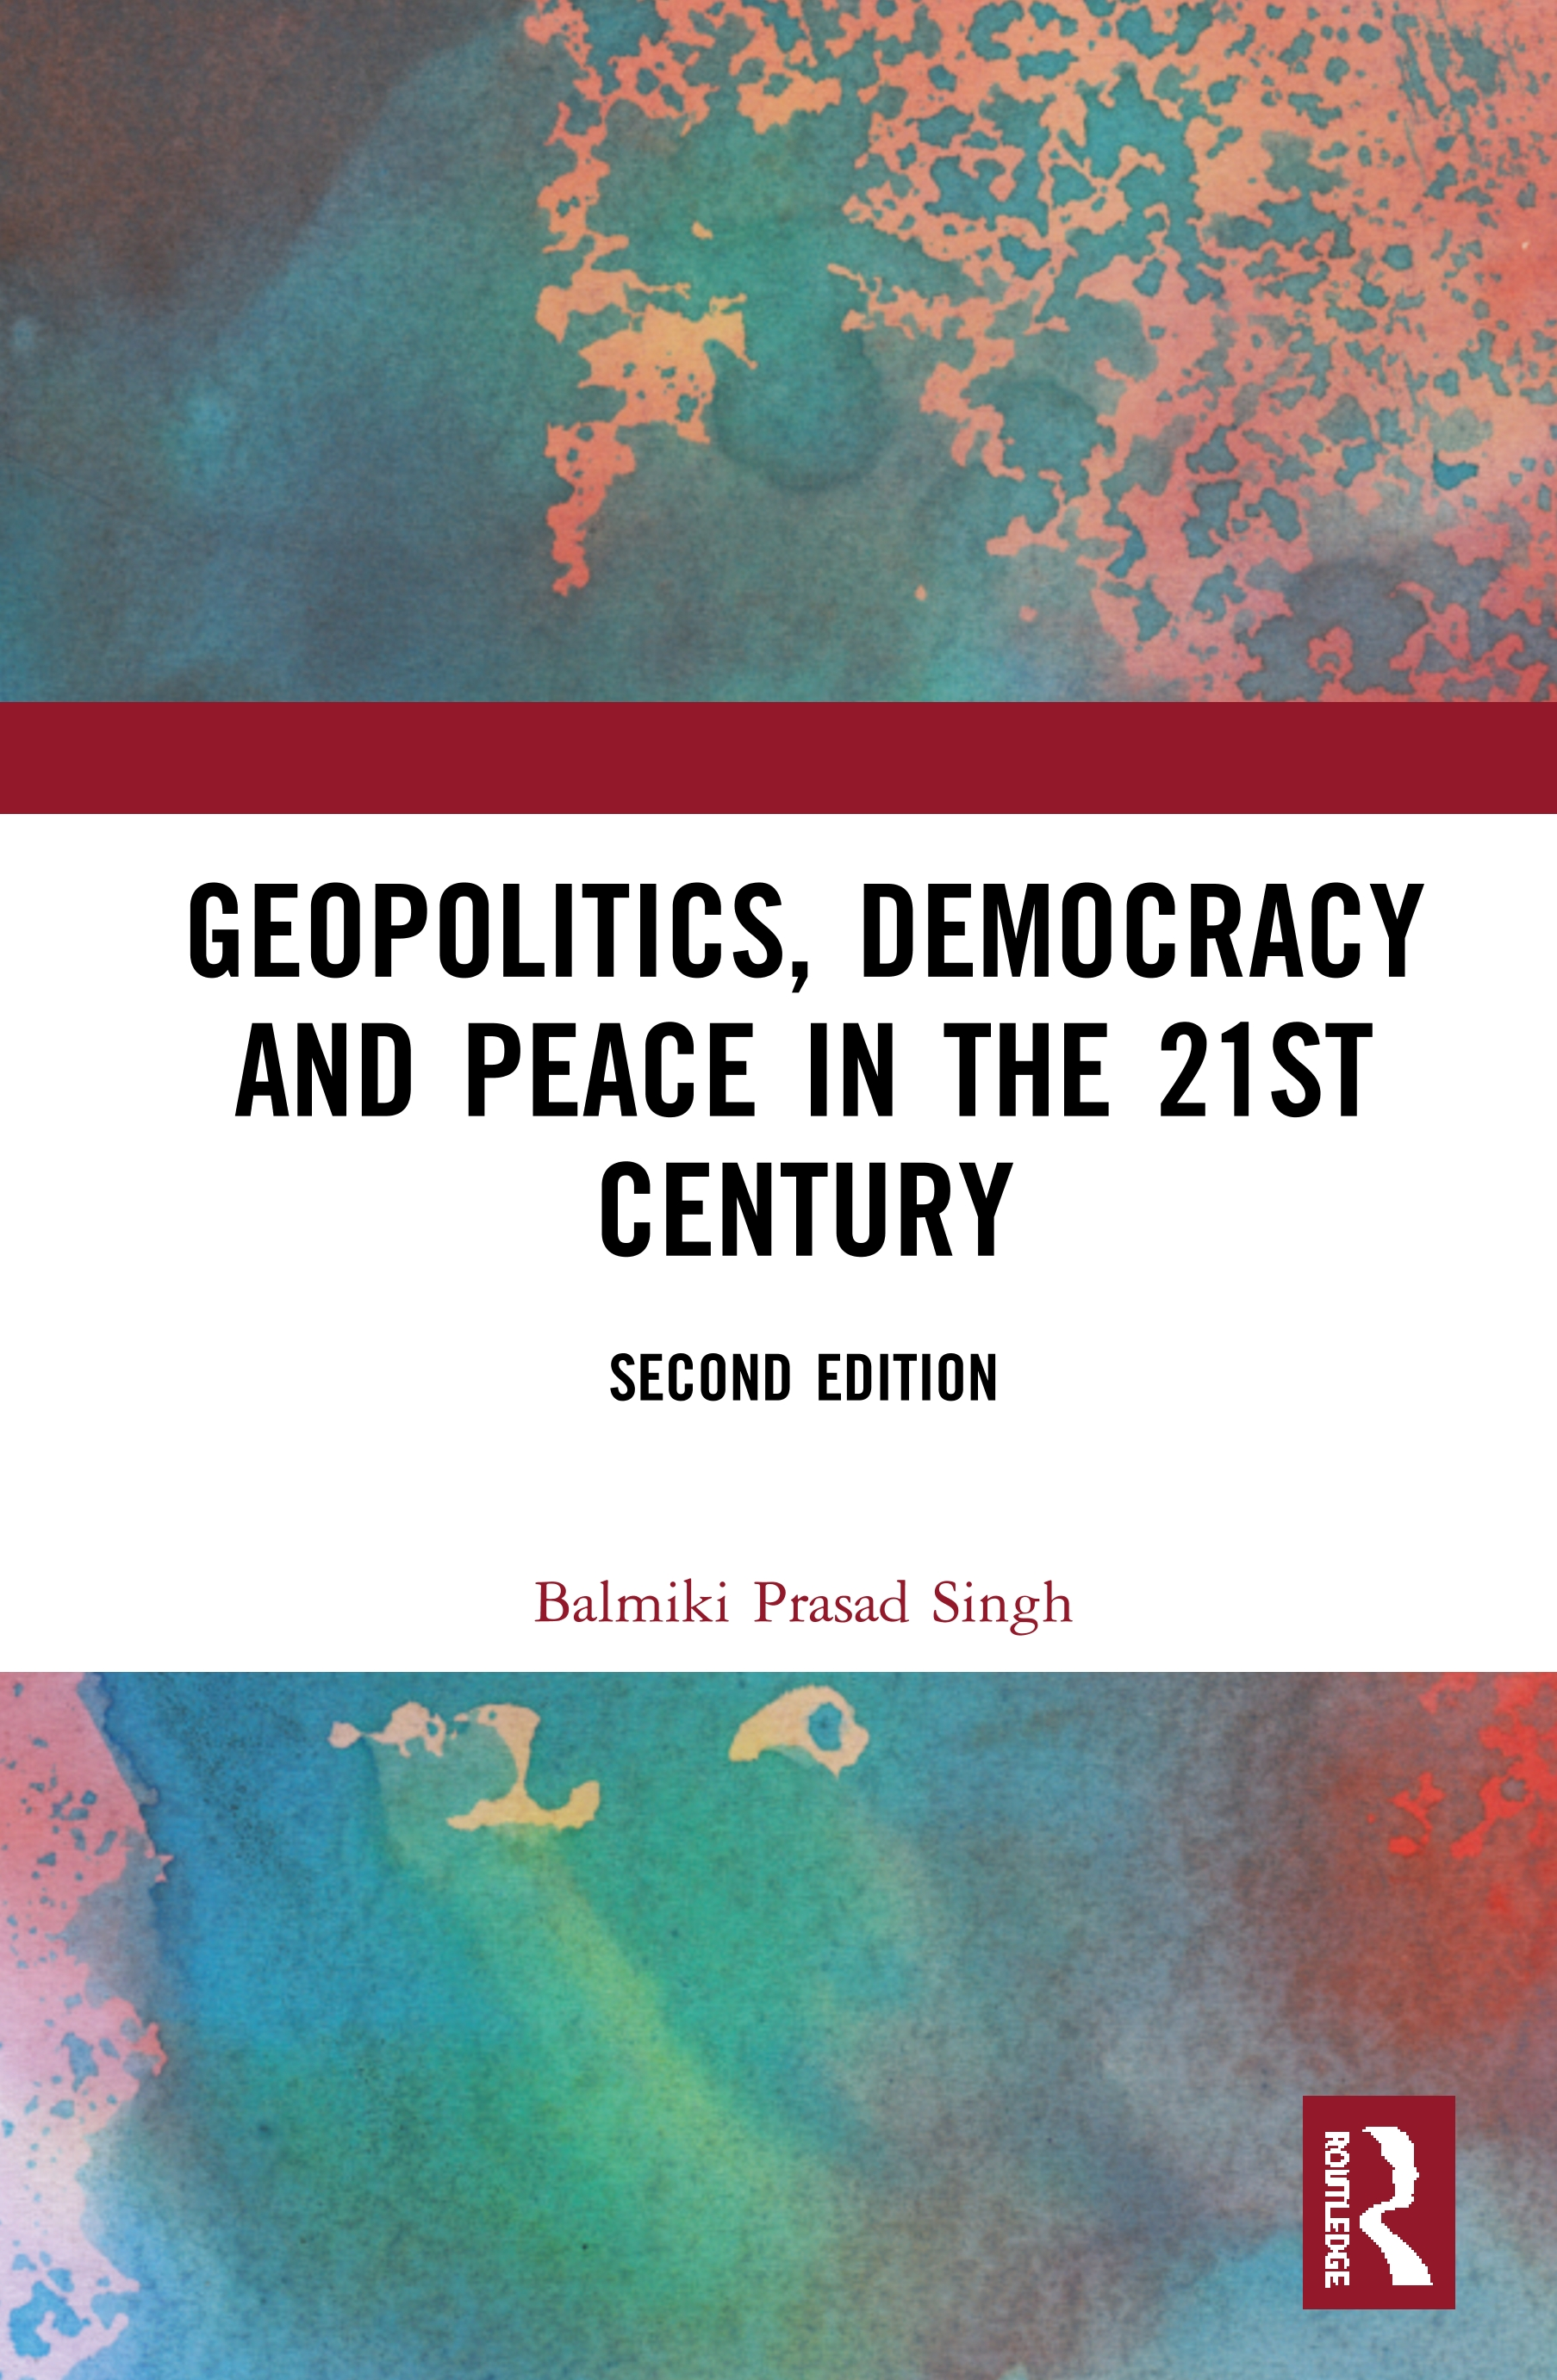 Geopolitics, Democracy and Peace in the 21st Century book cover